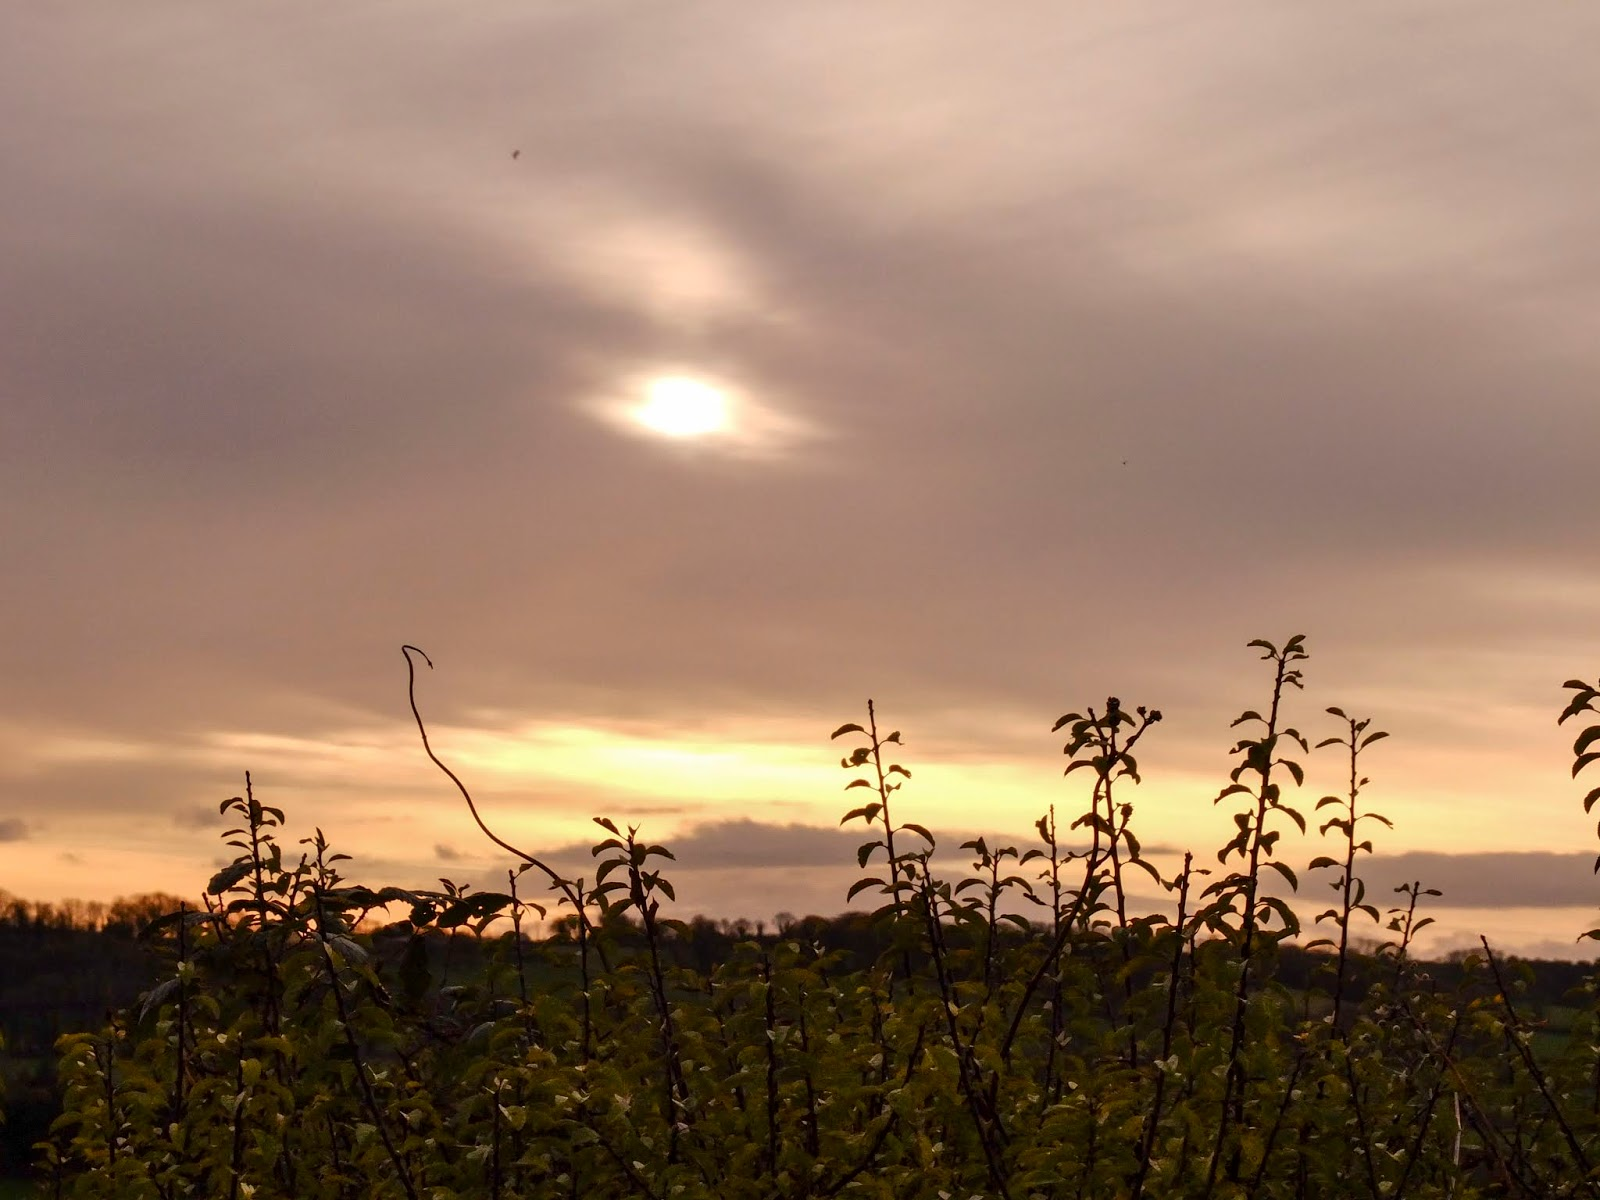 Sun behind the clouds at sunset over the hedge in County Cork.